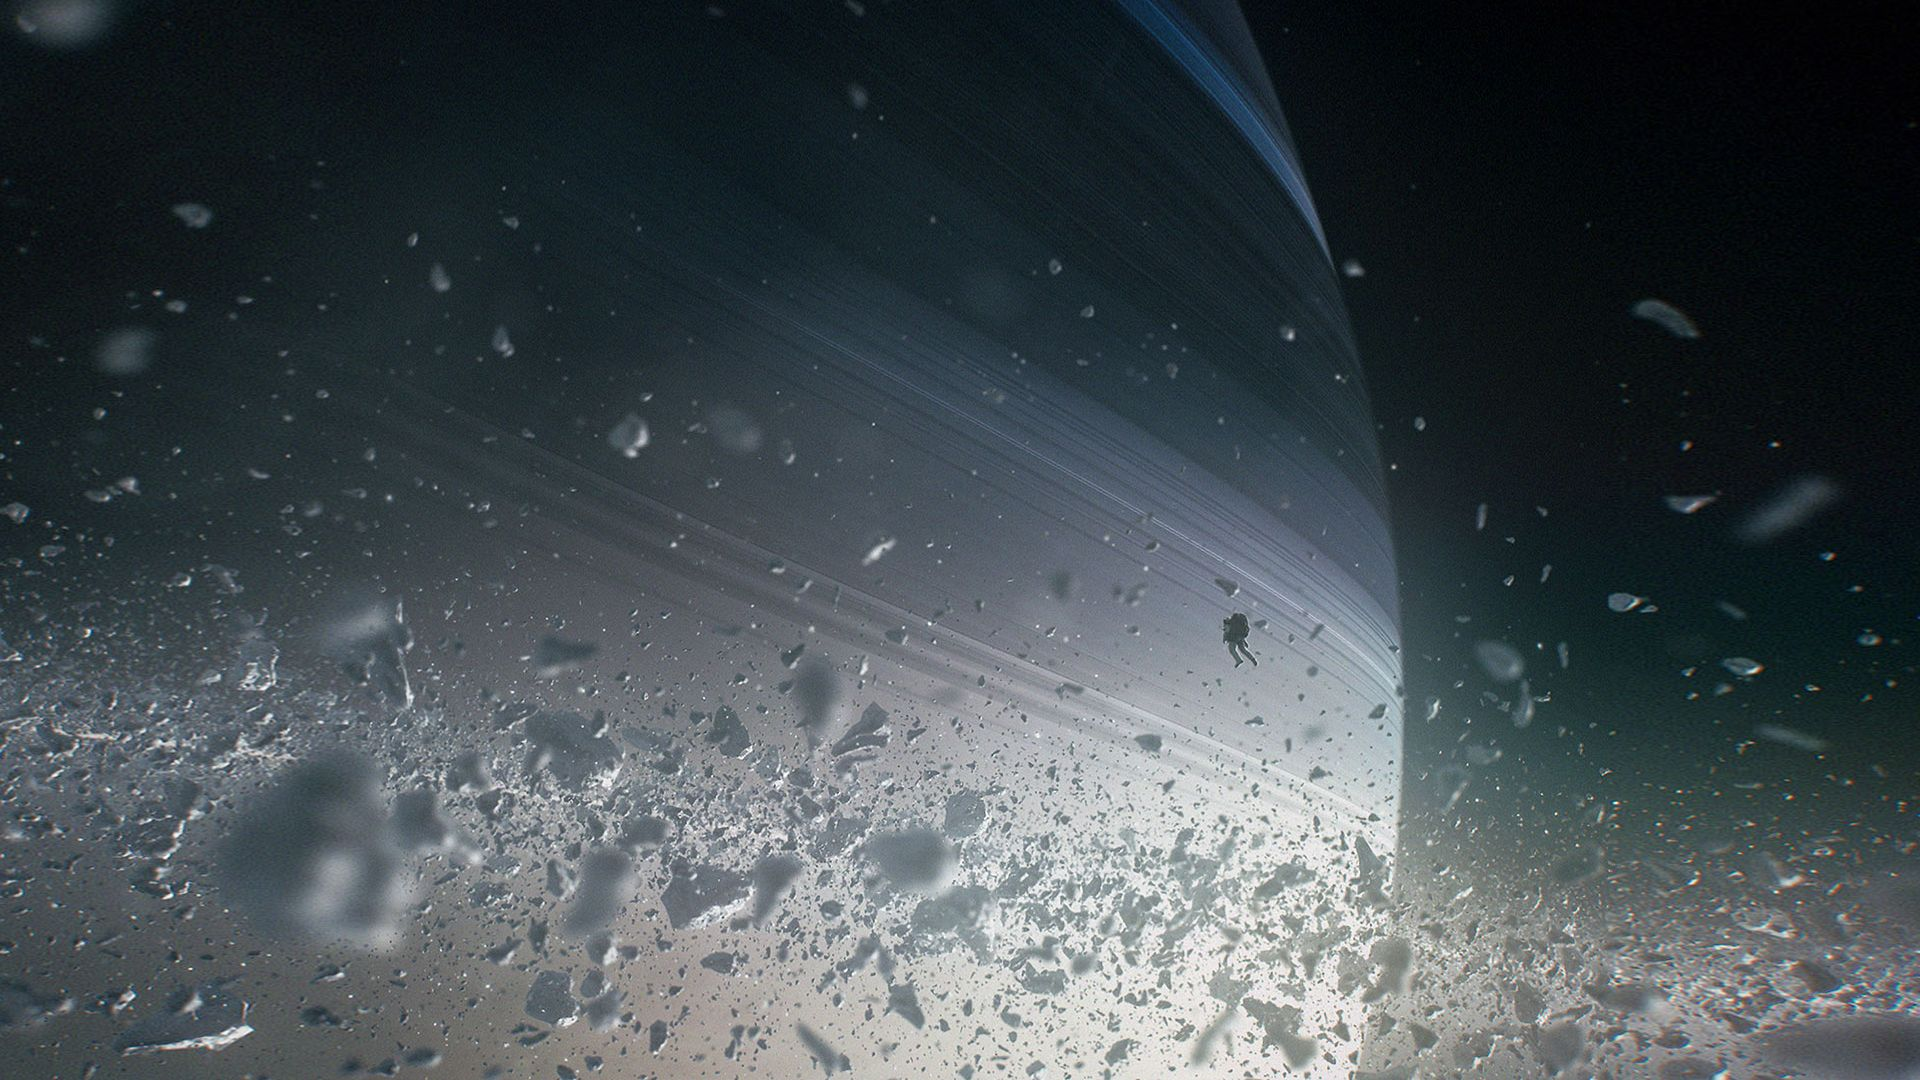 Lost In Space Wallpaper Posted By Christopher Tremblay